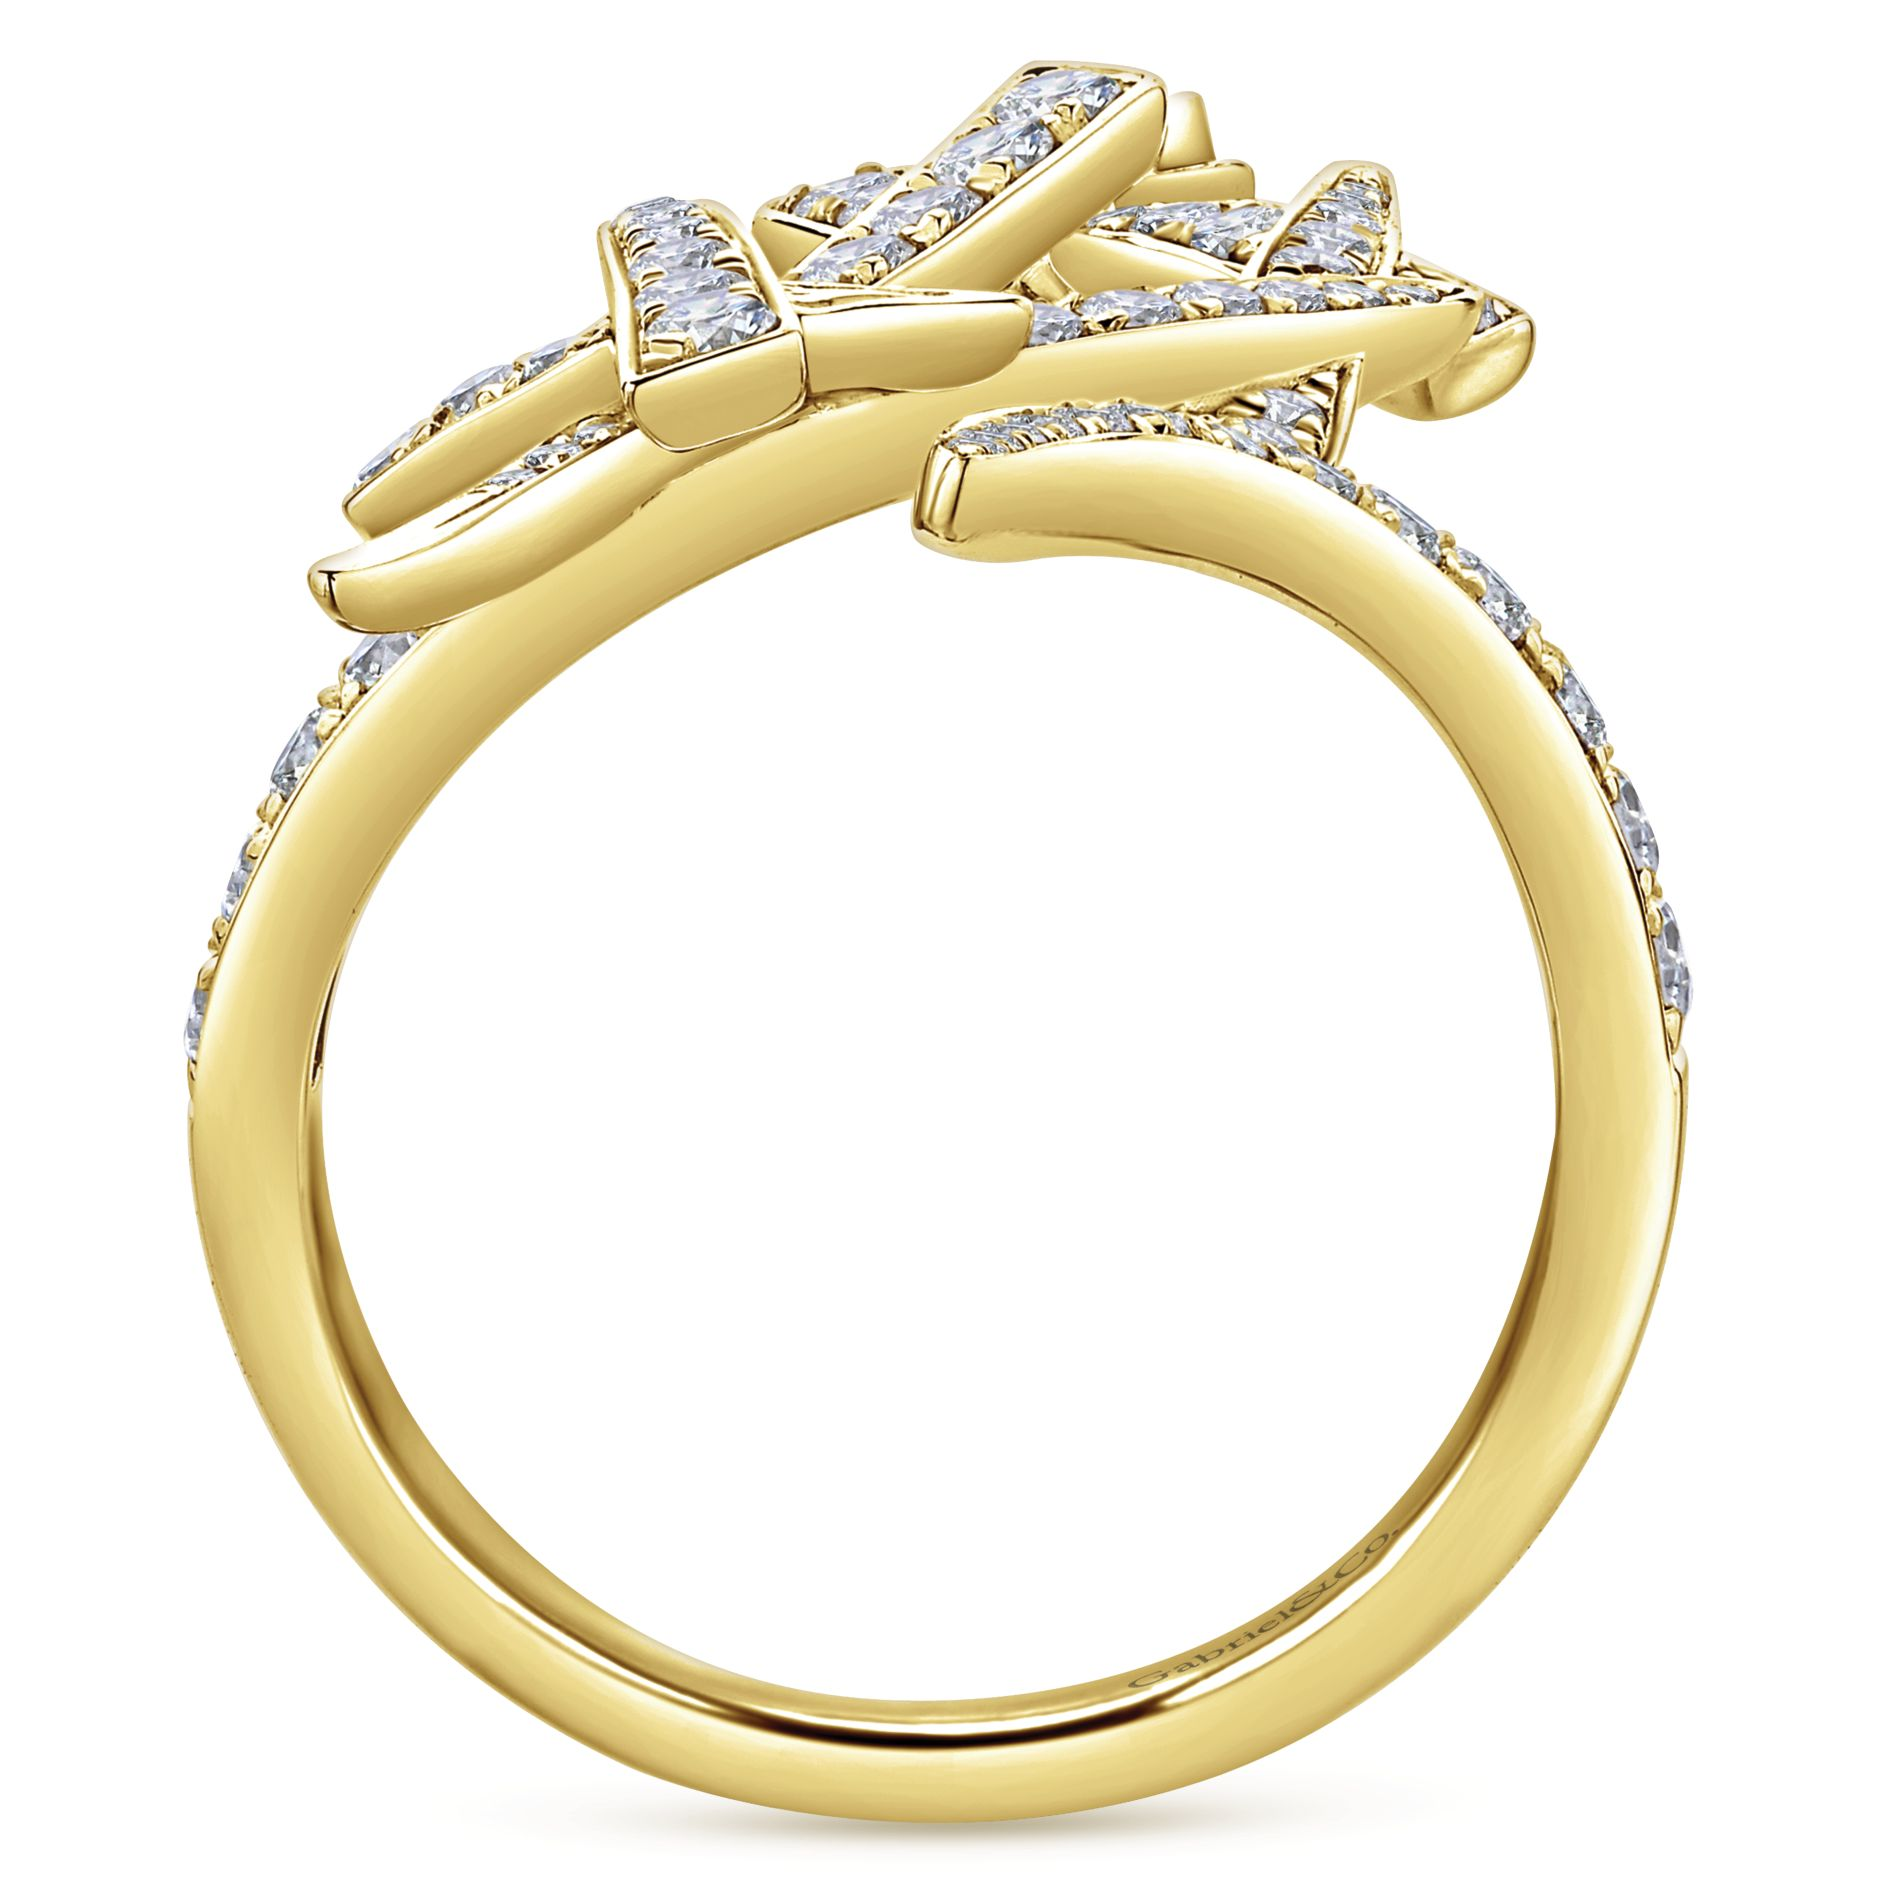 Rings - YELLOW GOLD STATEMENT DIAMOND LADIES RING - image #2